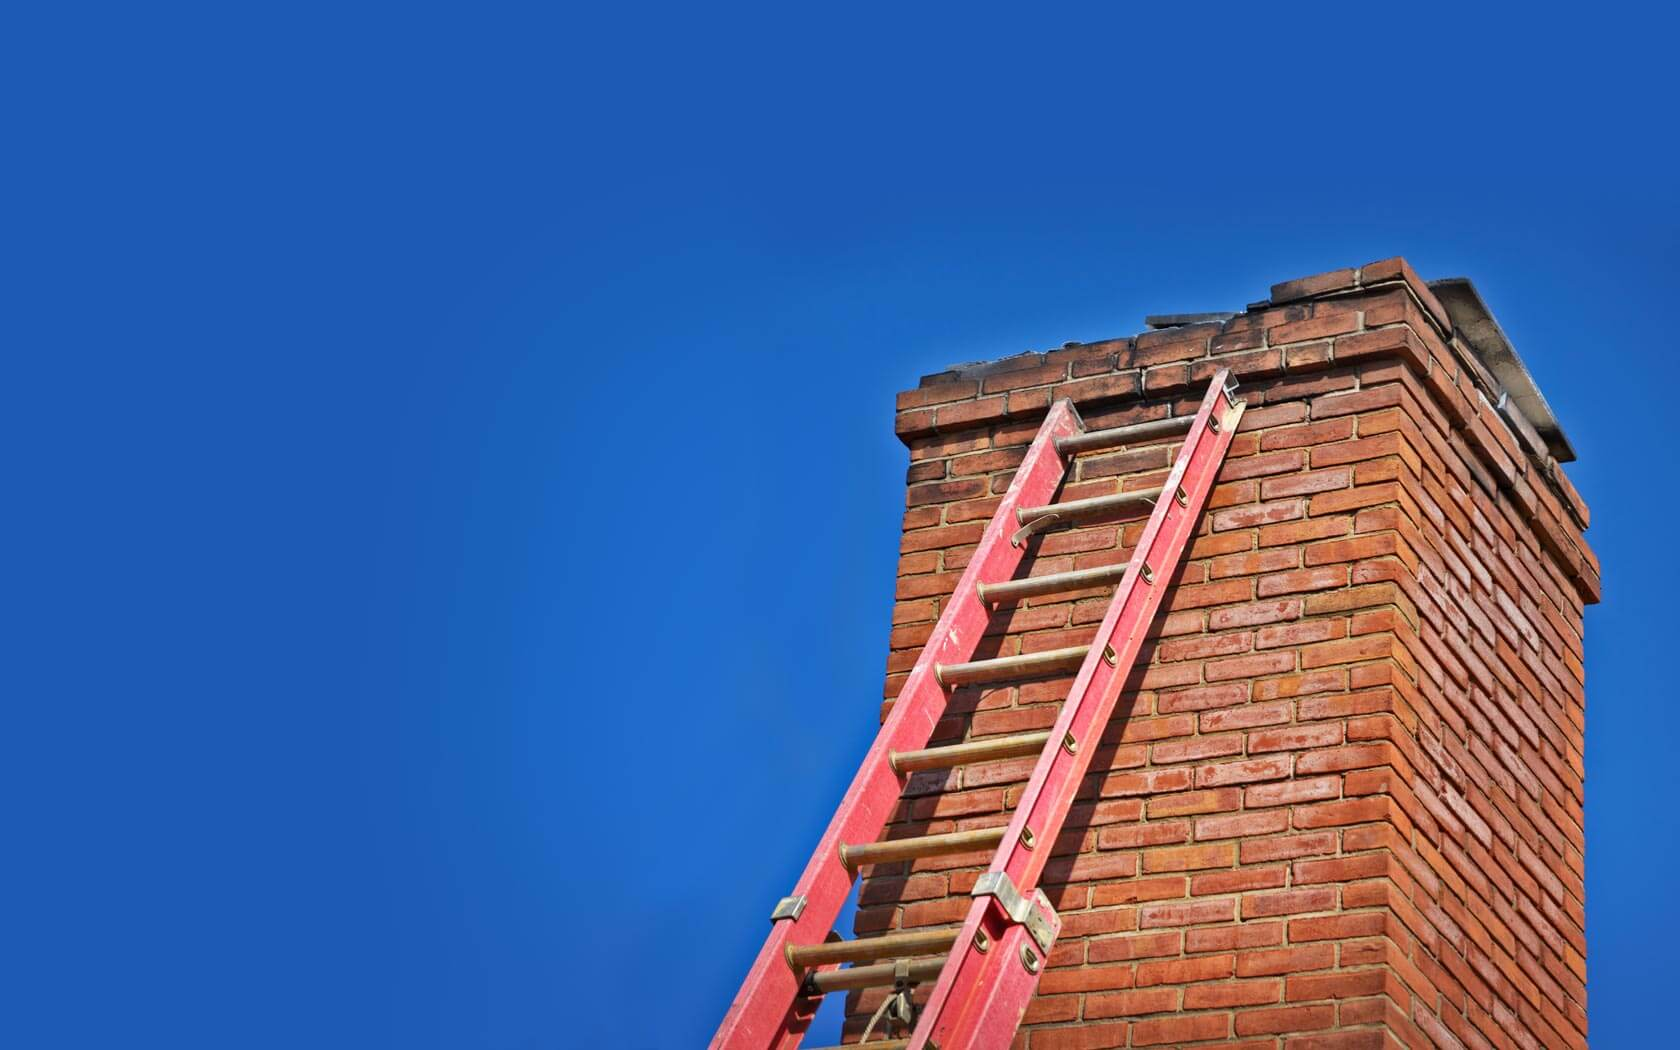 Comstock Park Chimney Cleaning